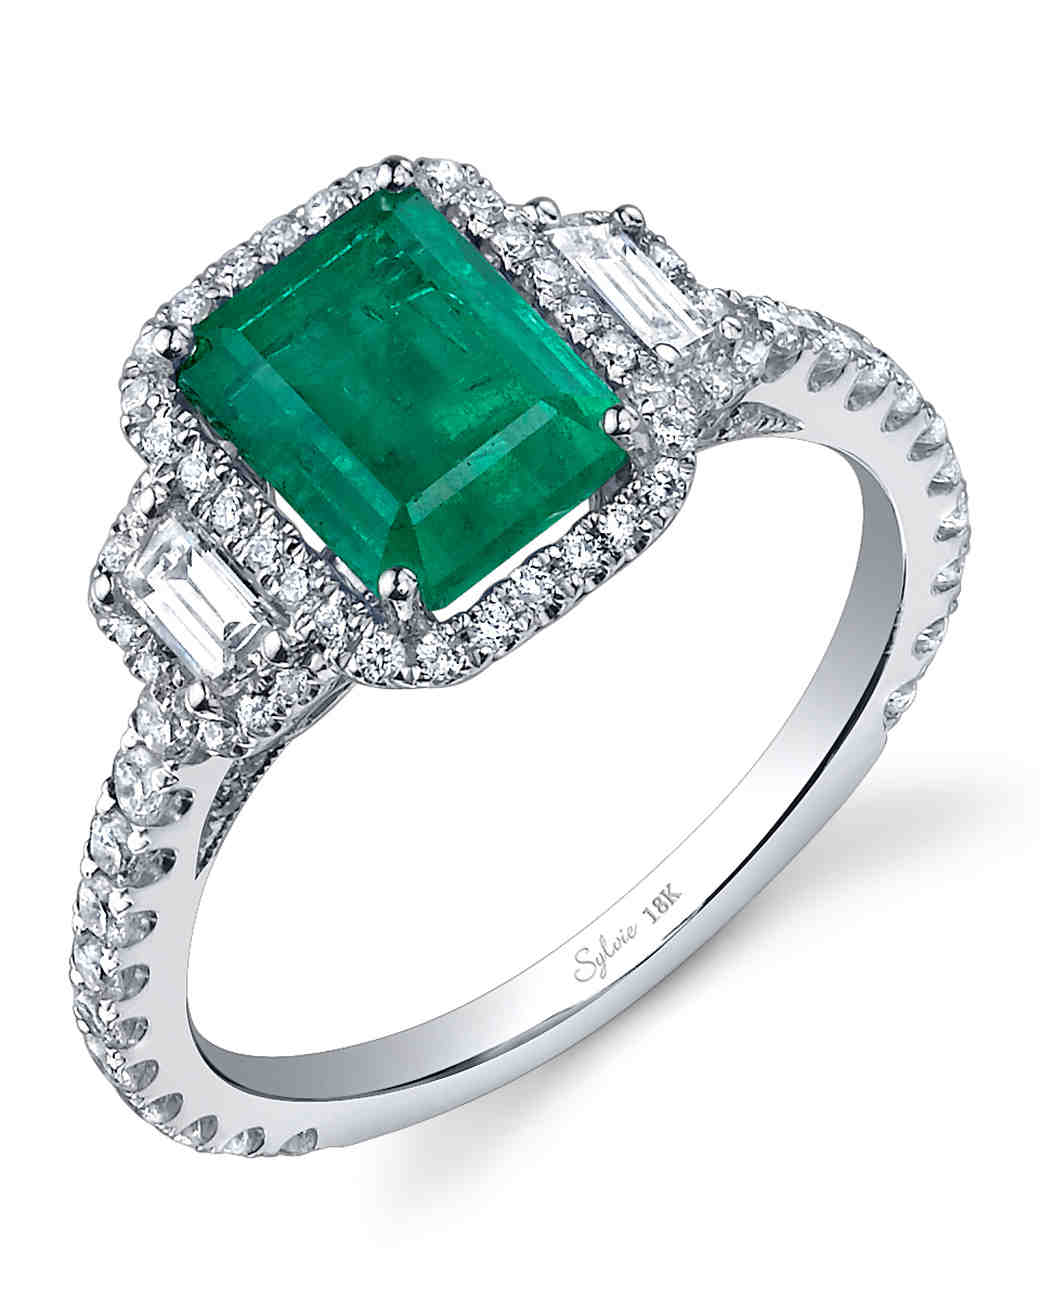 vancaro set floral cut emerald three wedding ring rings princess item ca emrald products stone unique bridal en